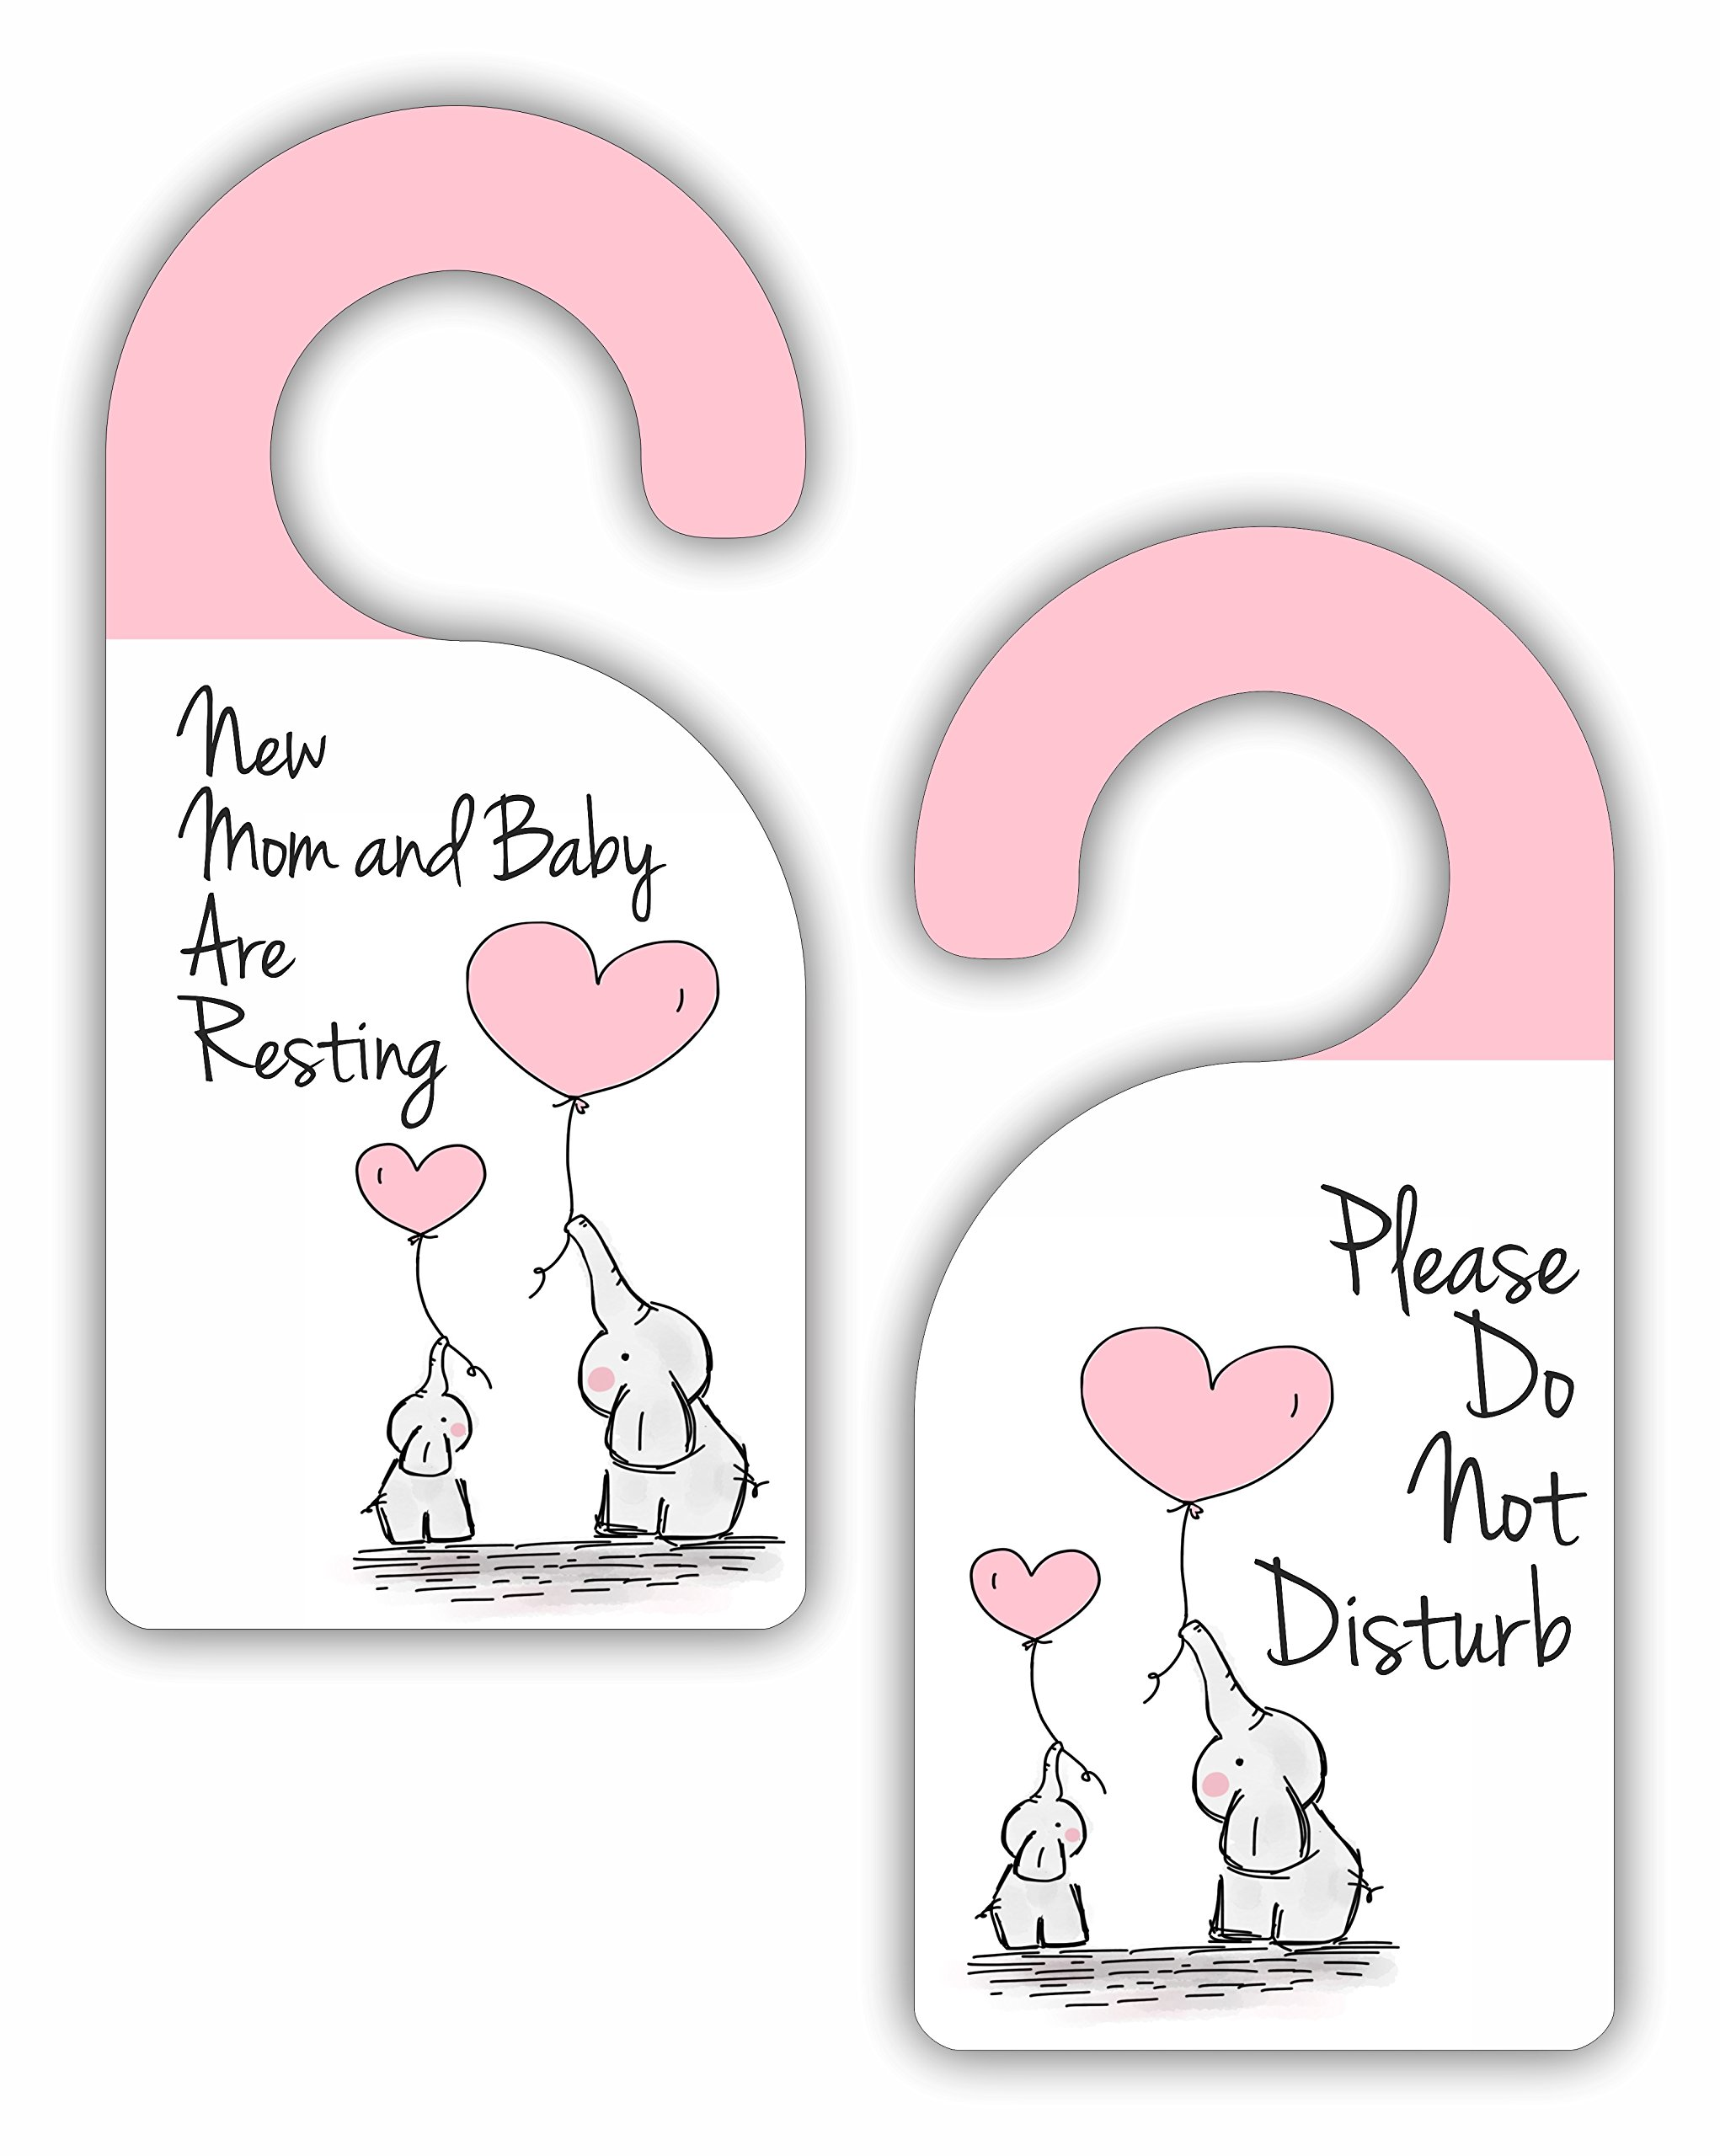 New Mom and Baby Are Resting - Please Do Not Disturb - Baby Girl - Room Door Sign Hanger - Double Sided - Hard Plastic - Glossy Finish